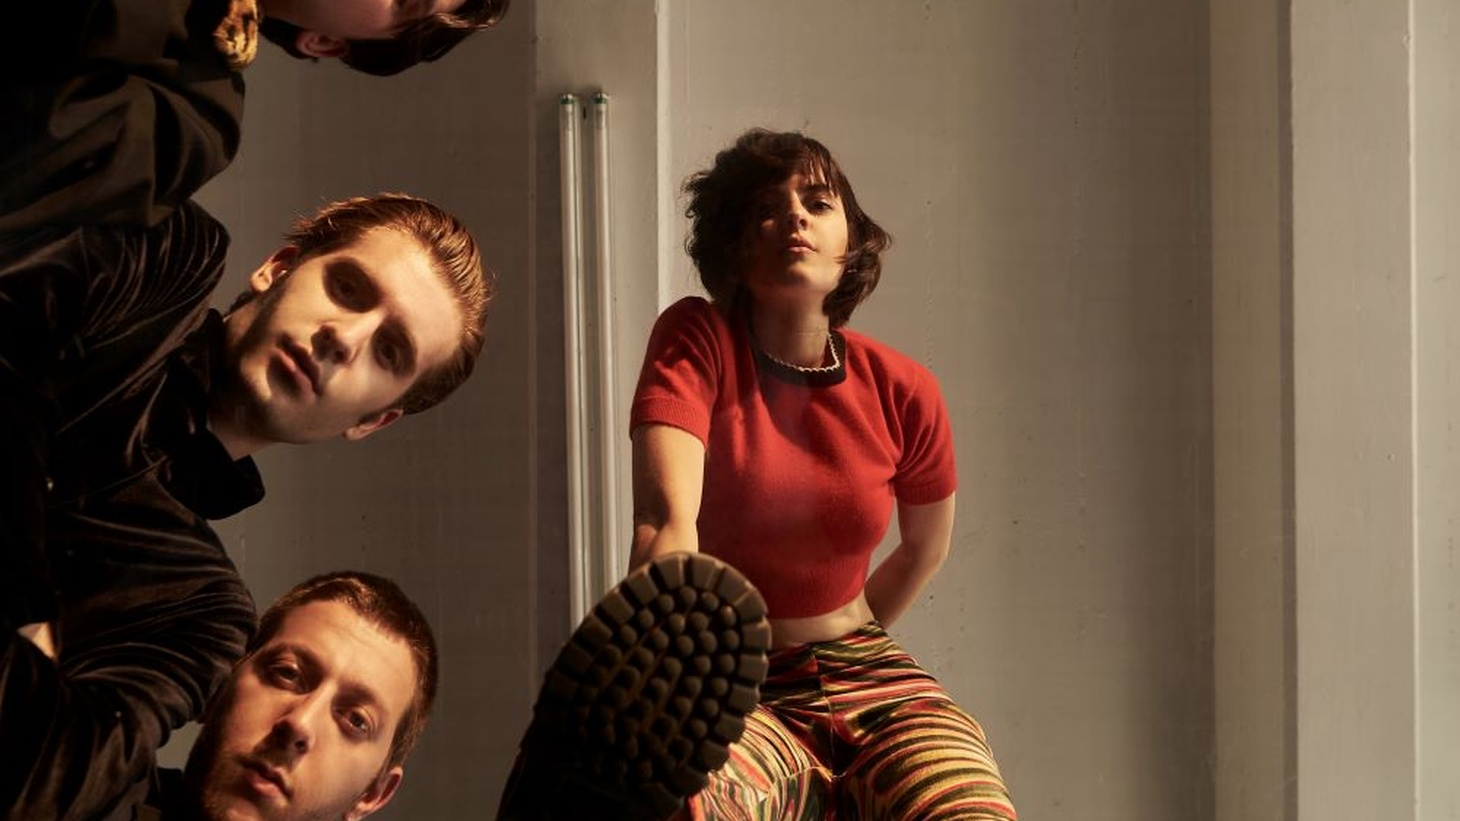 """We think The Marías are about to strike big, and we're eager to get our hands on their new album, """"Cinema,"""" which draws on what brought this band together in the first place. Let's check out the sexy beat behind """"Hush."""""""